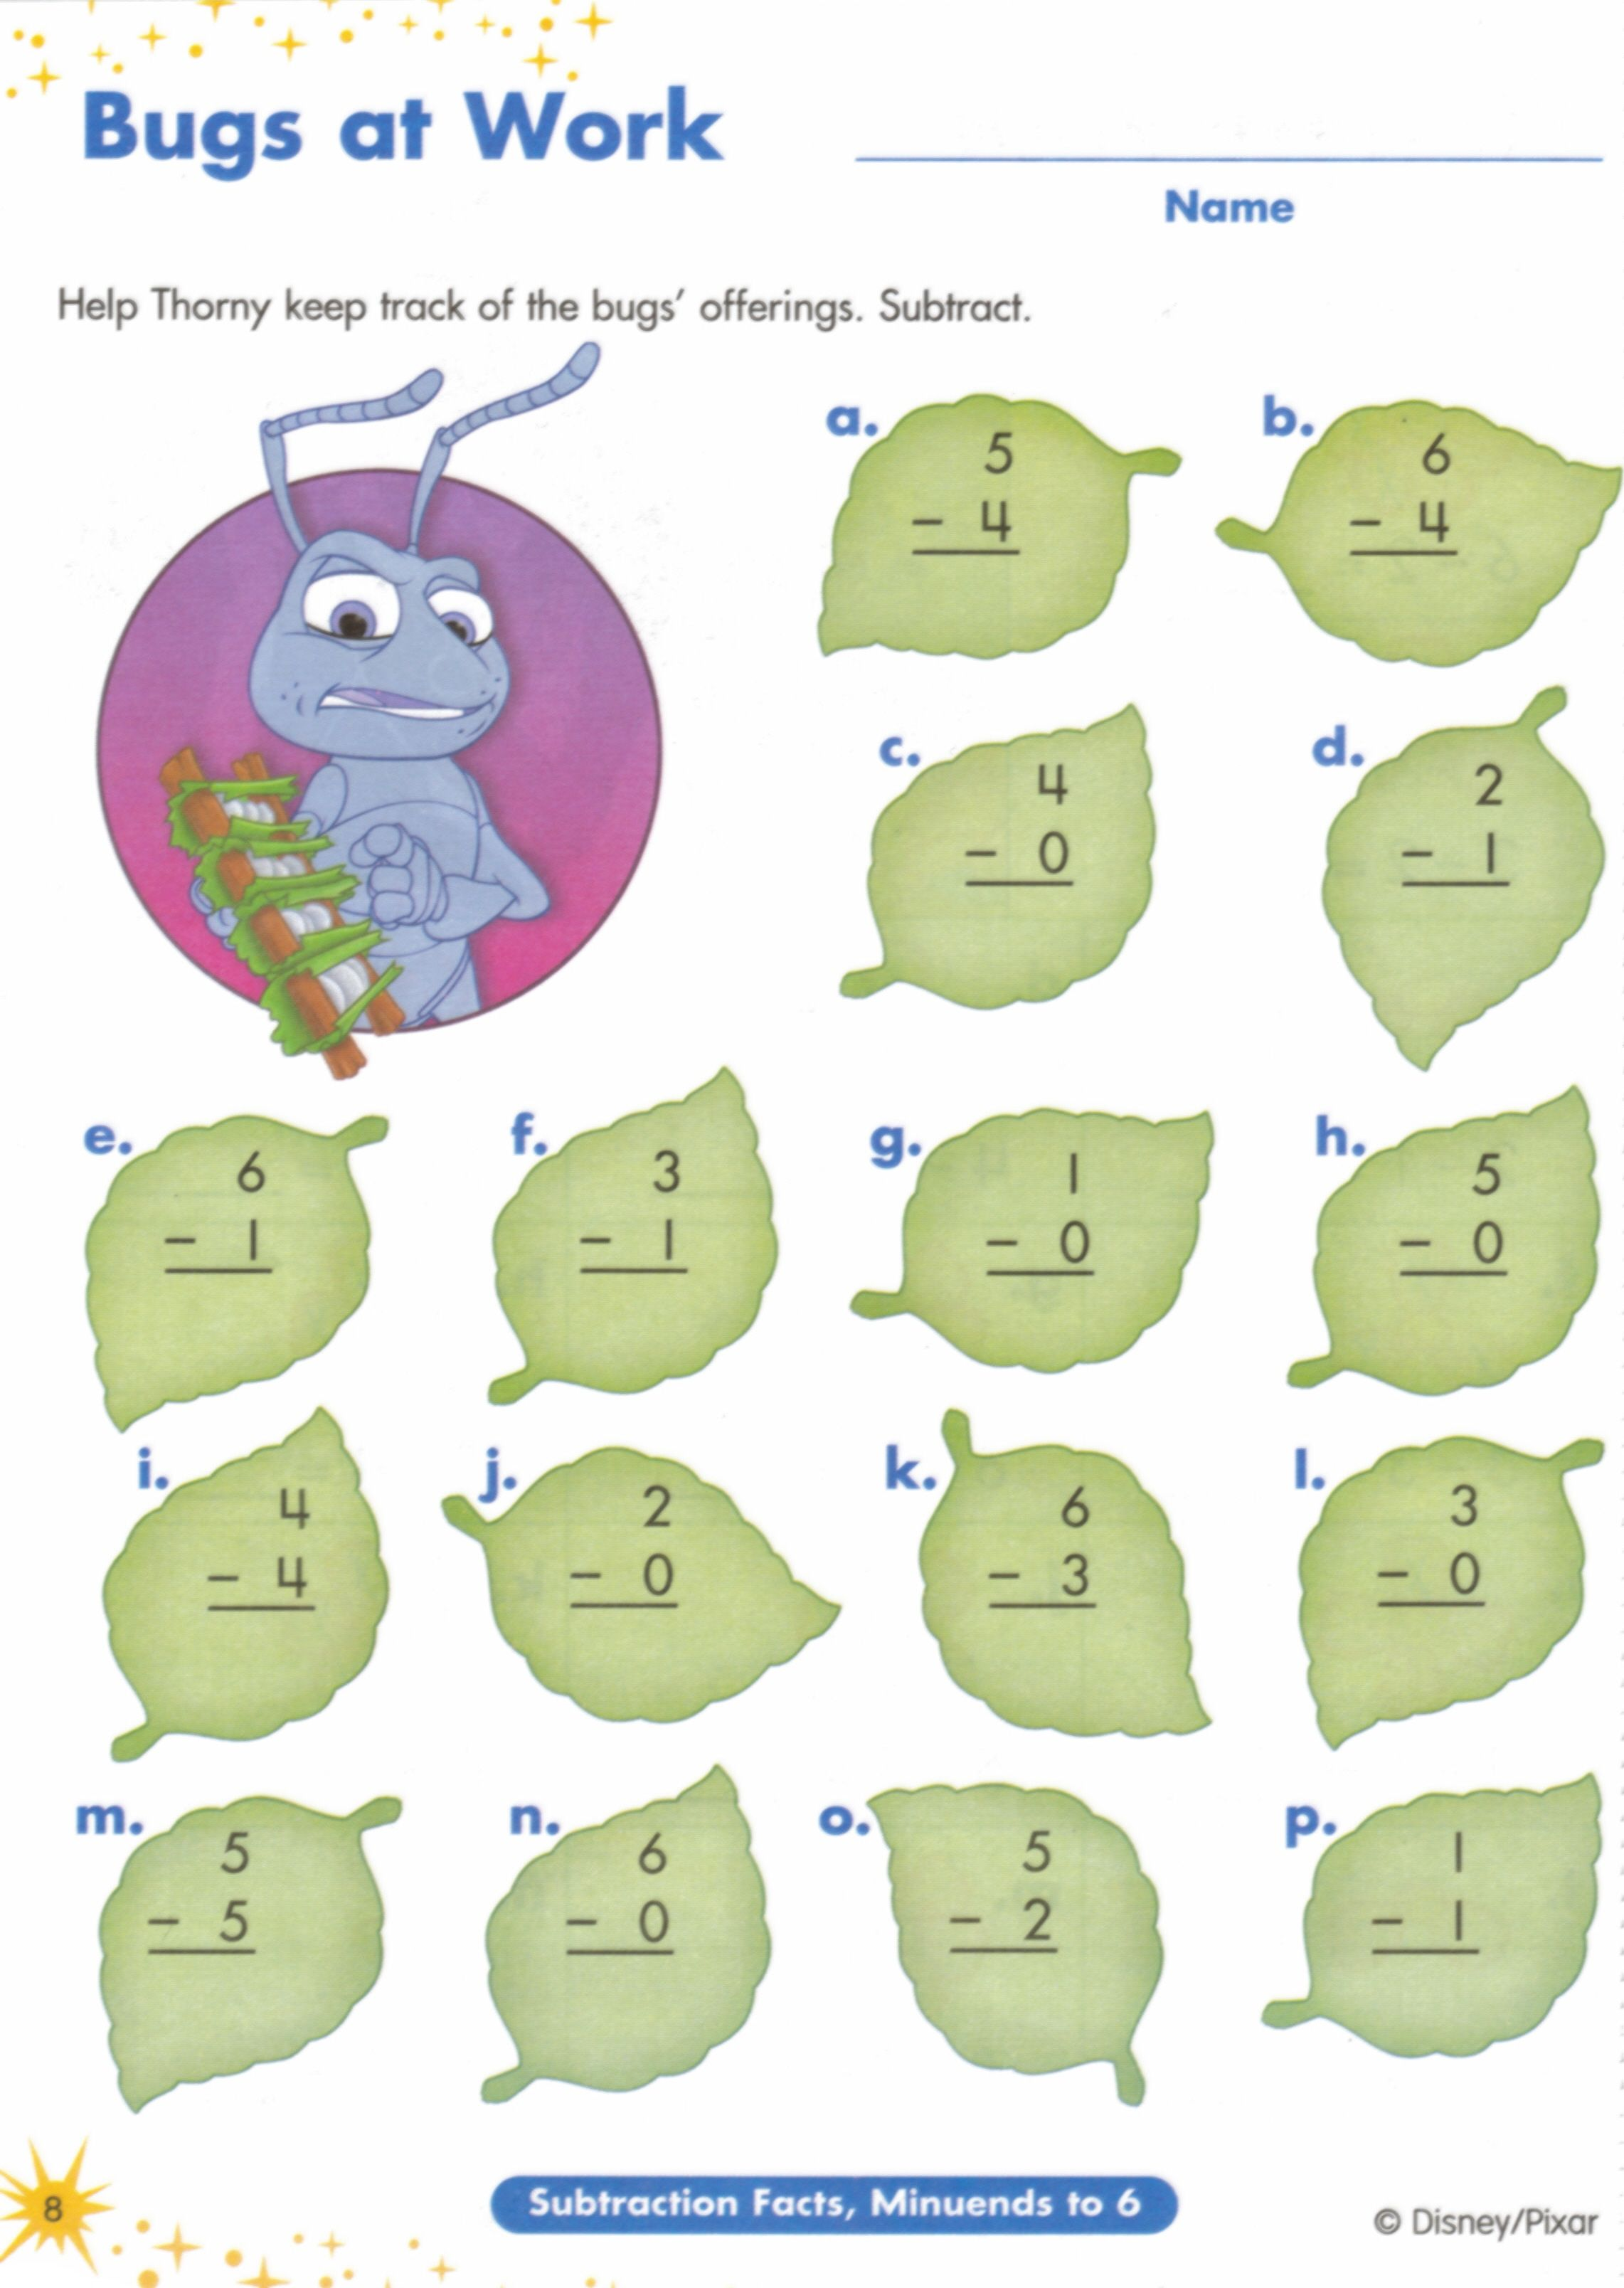 Proatmealus  Surprising  Images About Worksheets On Pinterest  Fun Facts For Kids  With Engaging  Images About Worksheets On Pinterest  Fun Facts For Kids Earth Day Worksheets And Jungles With Comely Slope Graph Worksheet Also Mineral Worksheets In Addition Conversions Worksheets And Esl Worksheets For Adults Free Printable As Well As Super Kids Math Worksheets Additionally Composite Risk Management Worksheet Example From Pinterestcom With Proatmealus  Engaging  Images About Worksheets On Pinterest  Fun Facts For Kids  With Comely  Images About Worksheets On Pinterest  Fun Facts For Kids Earth Day Worksheets And Jungles And Surprising Slope Graph Worksheet Also Mineral Worksheets In Addition Conversions Worksheets From Pinterestcom